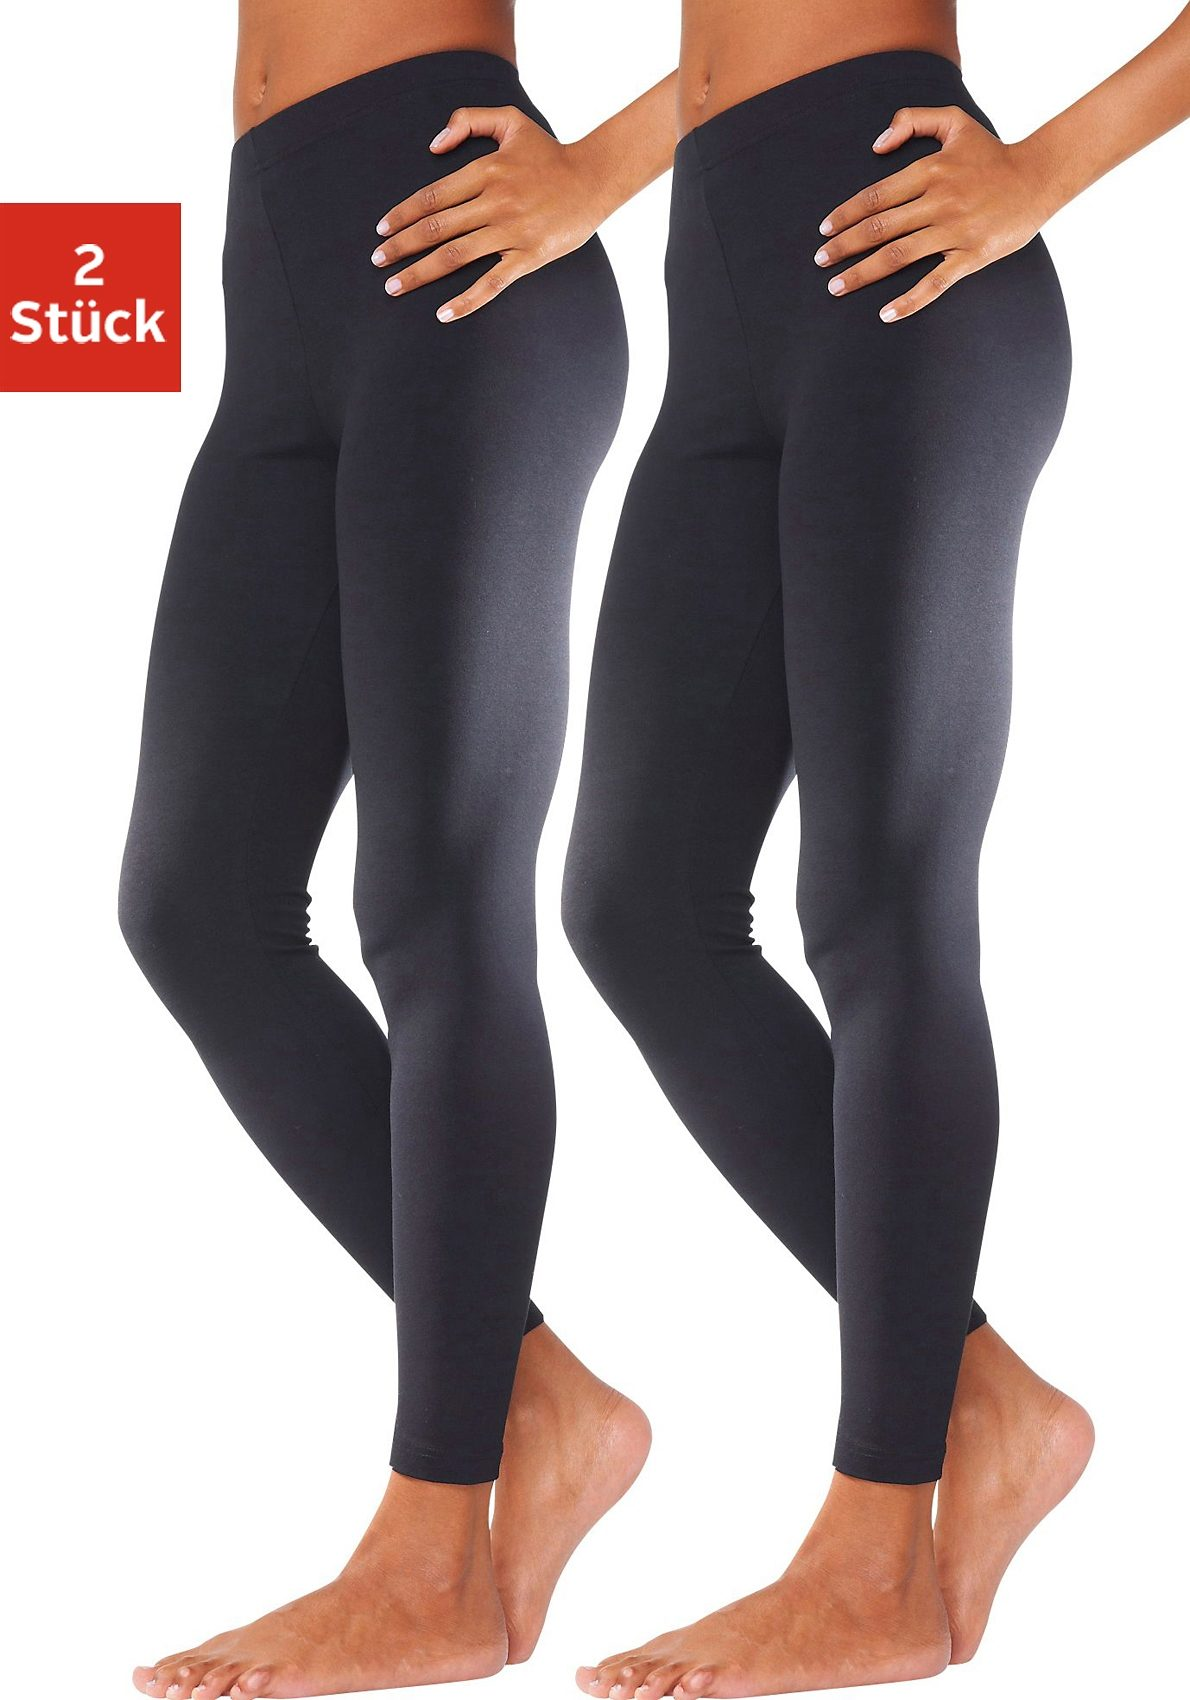 Vivance Basic Leggings (2 Stück) in körpernaher Passform